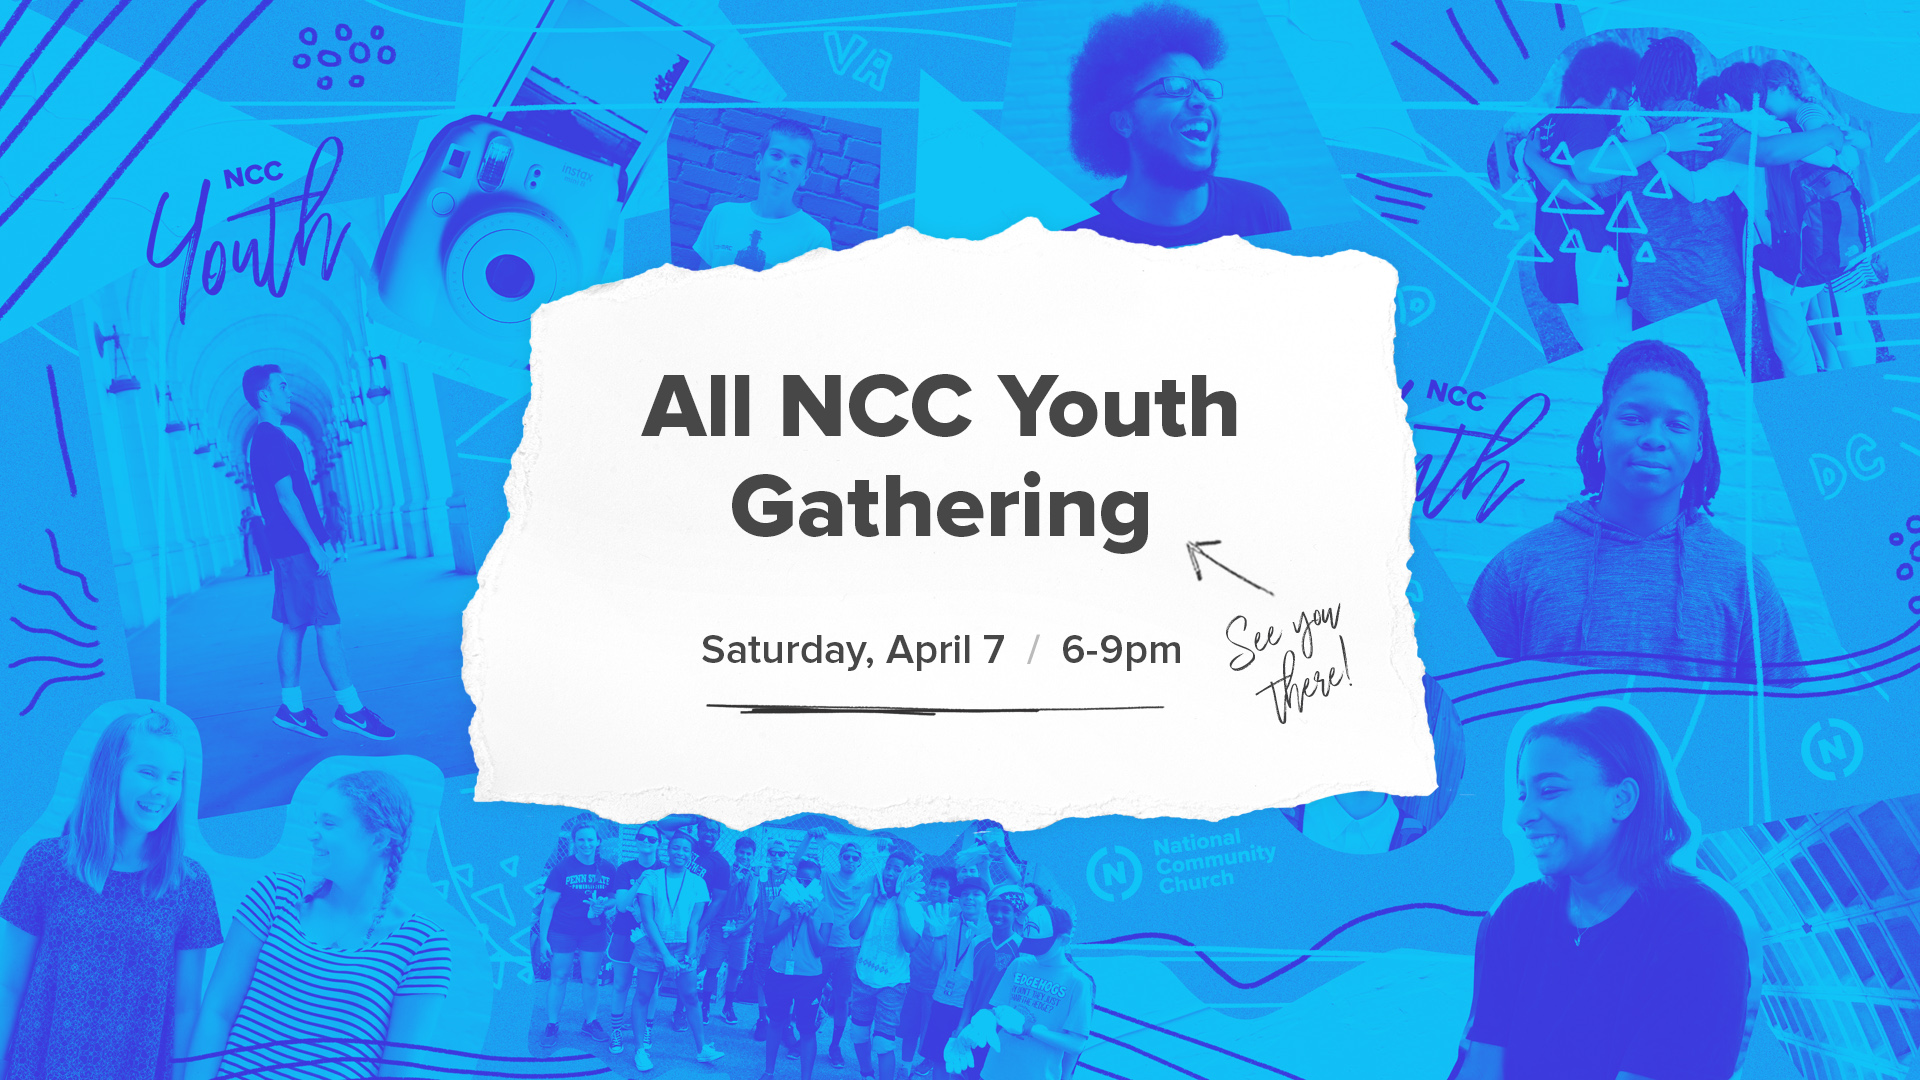 All youth